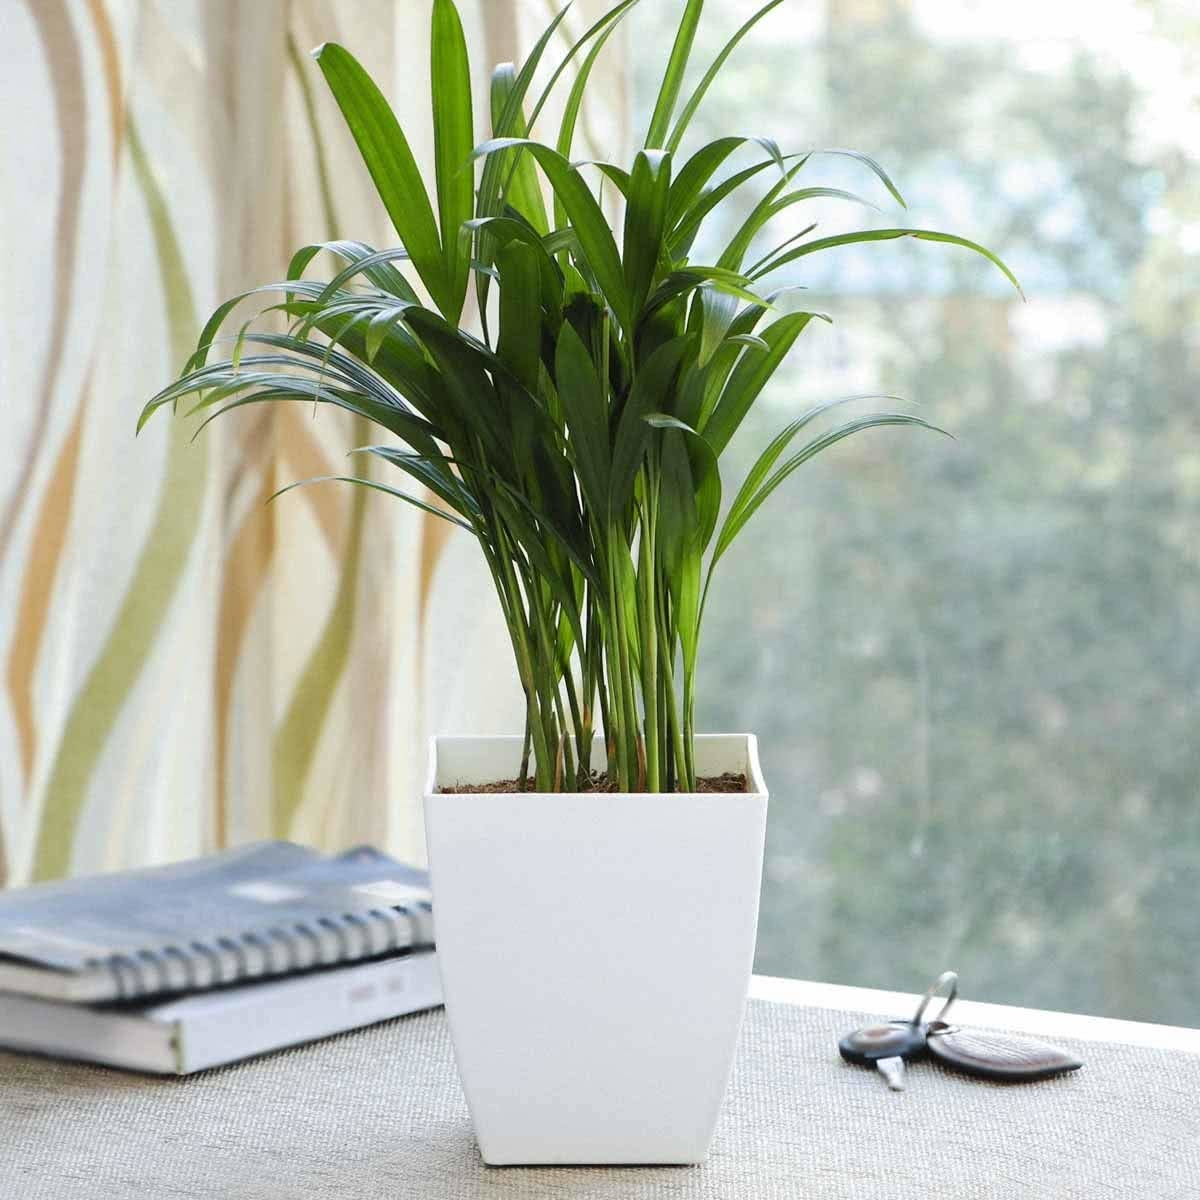 The areca plant kept in white pot and placed on desk with notebooks and keys.